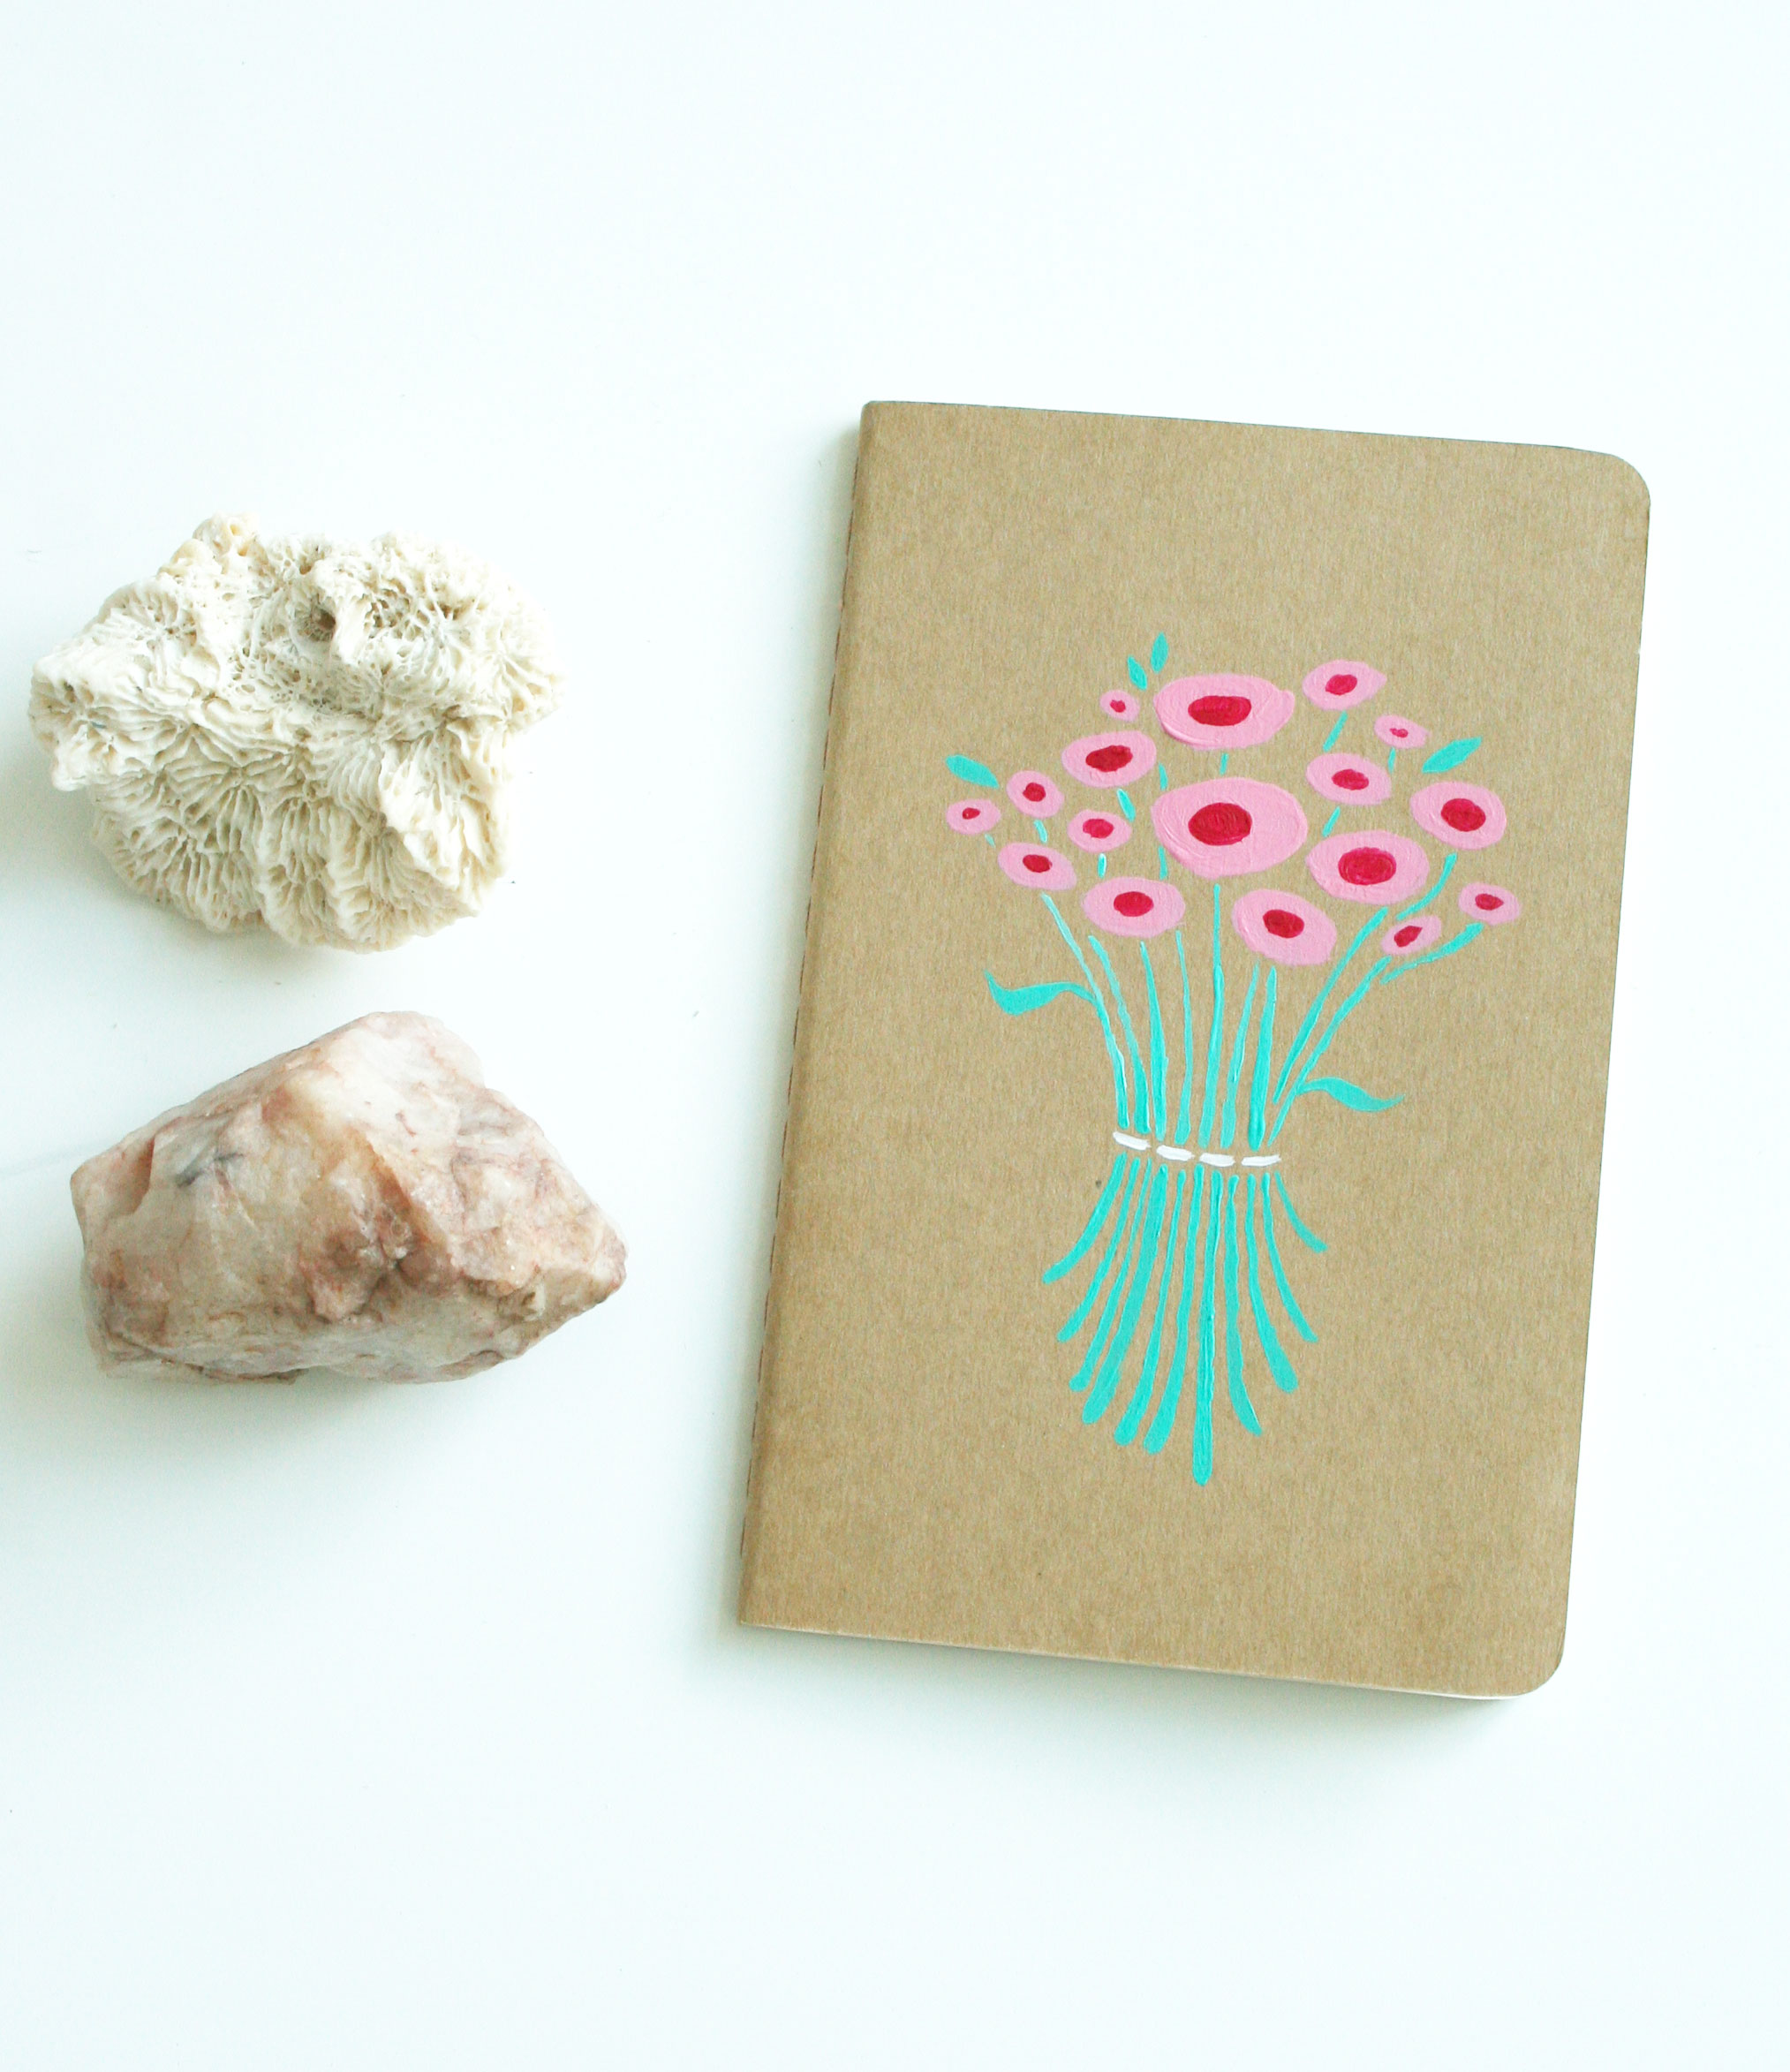 Finished Flower Journal by Fin and feather Art